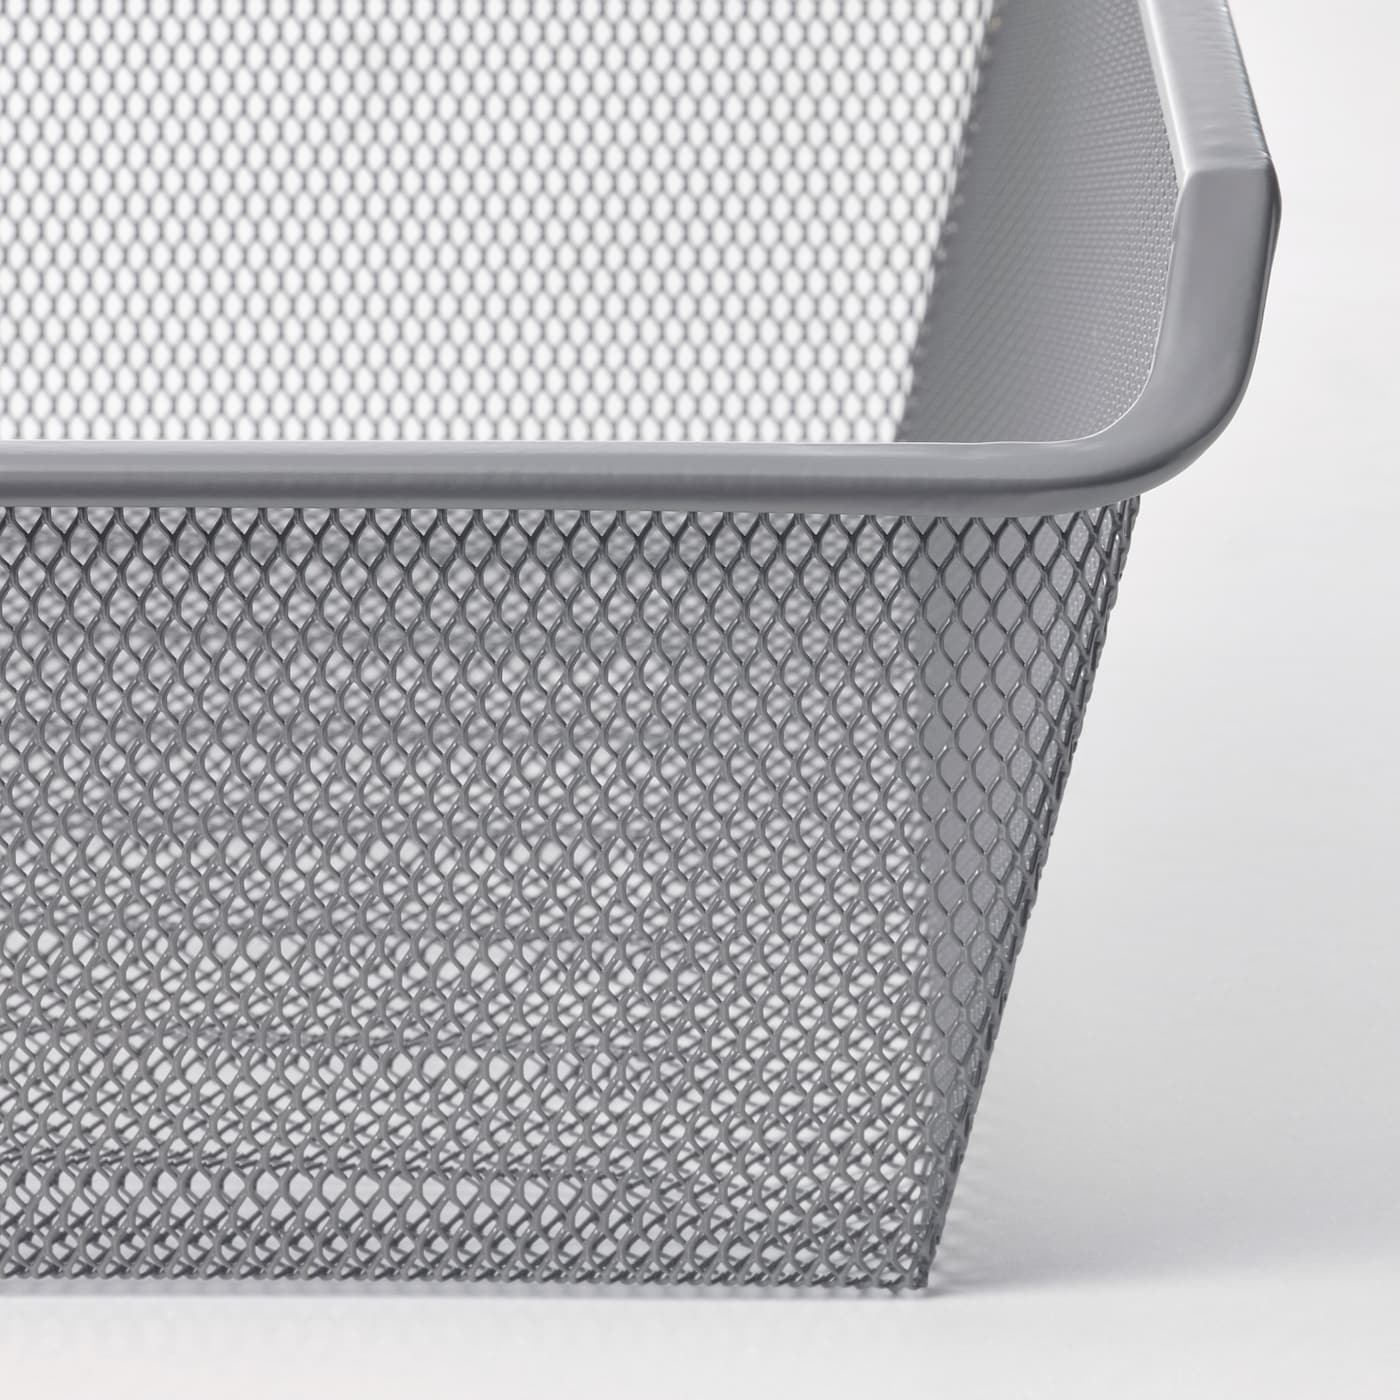 KOMPLEMENT Mesh basket with pull-out rail, dark grey, 75x35 cm